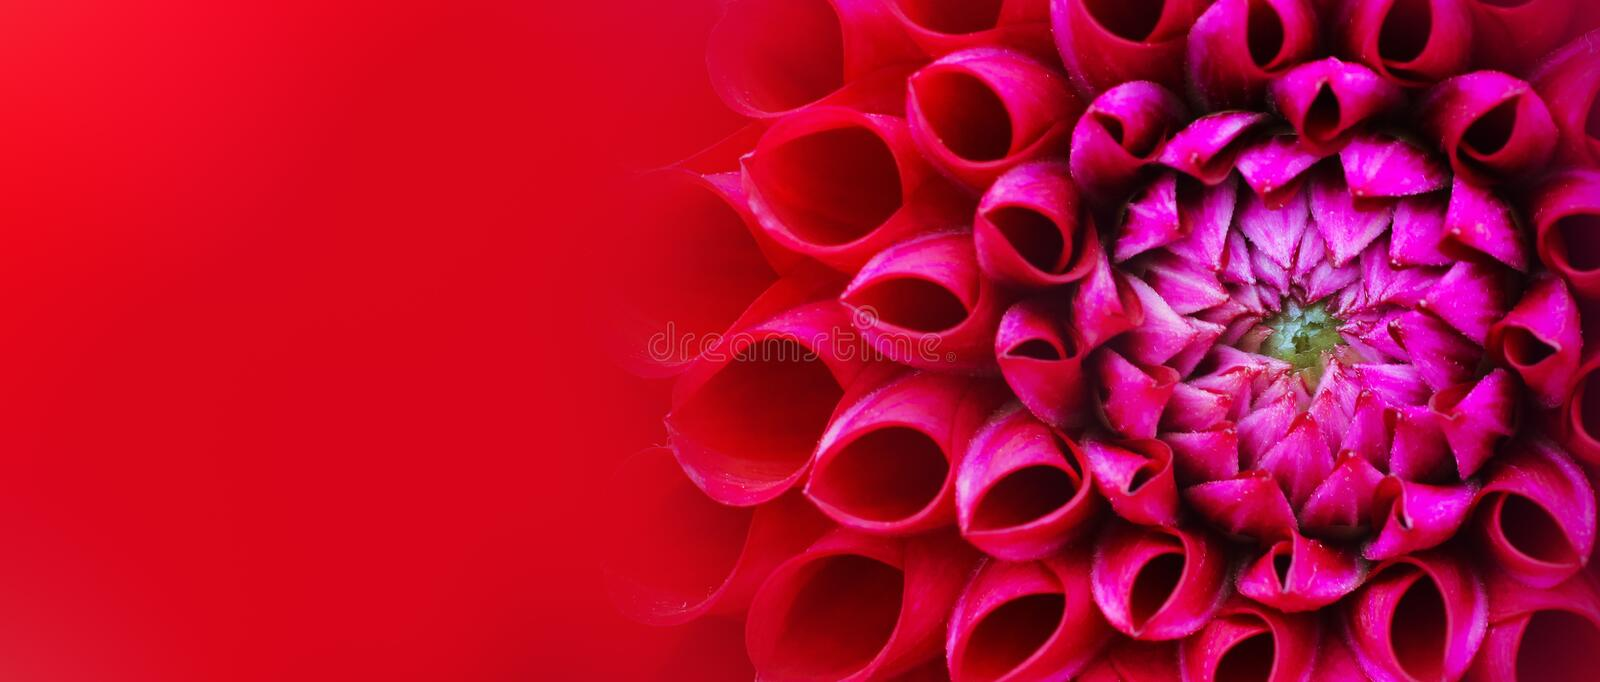 Red and pink dahlia flower macro photo background. Picture in colour emphasizing the light pink and dark red colours. Flower head at side of frame with royalty free stock photography